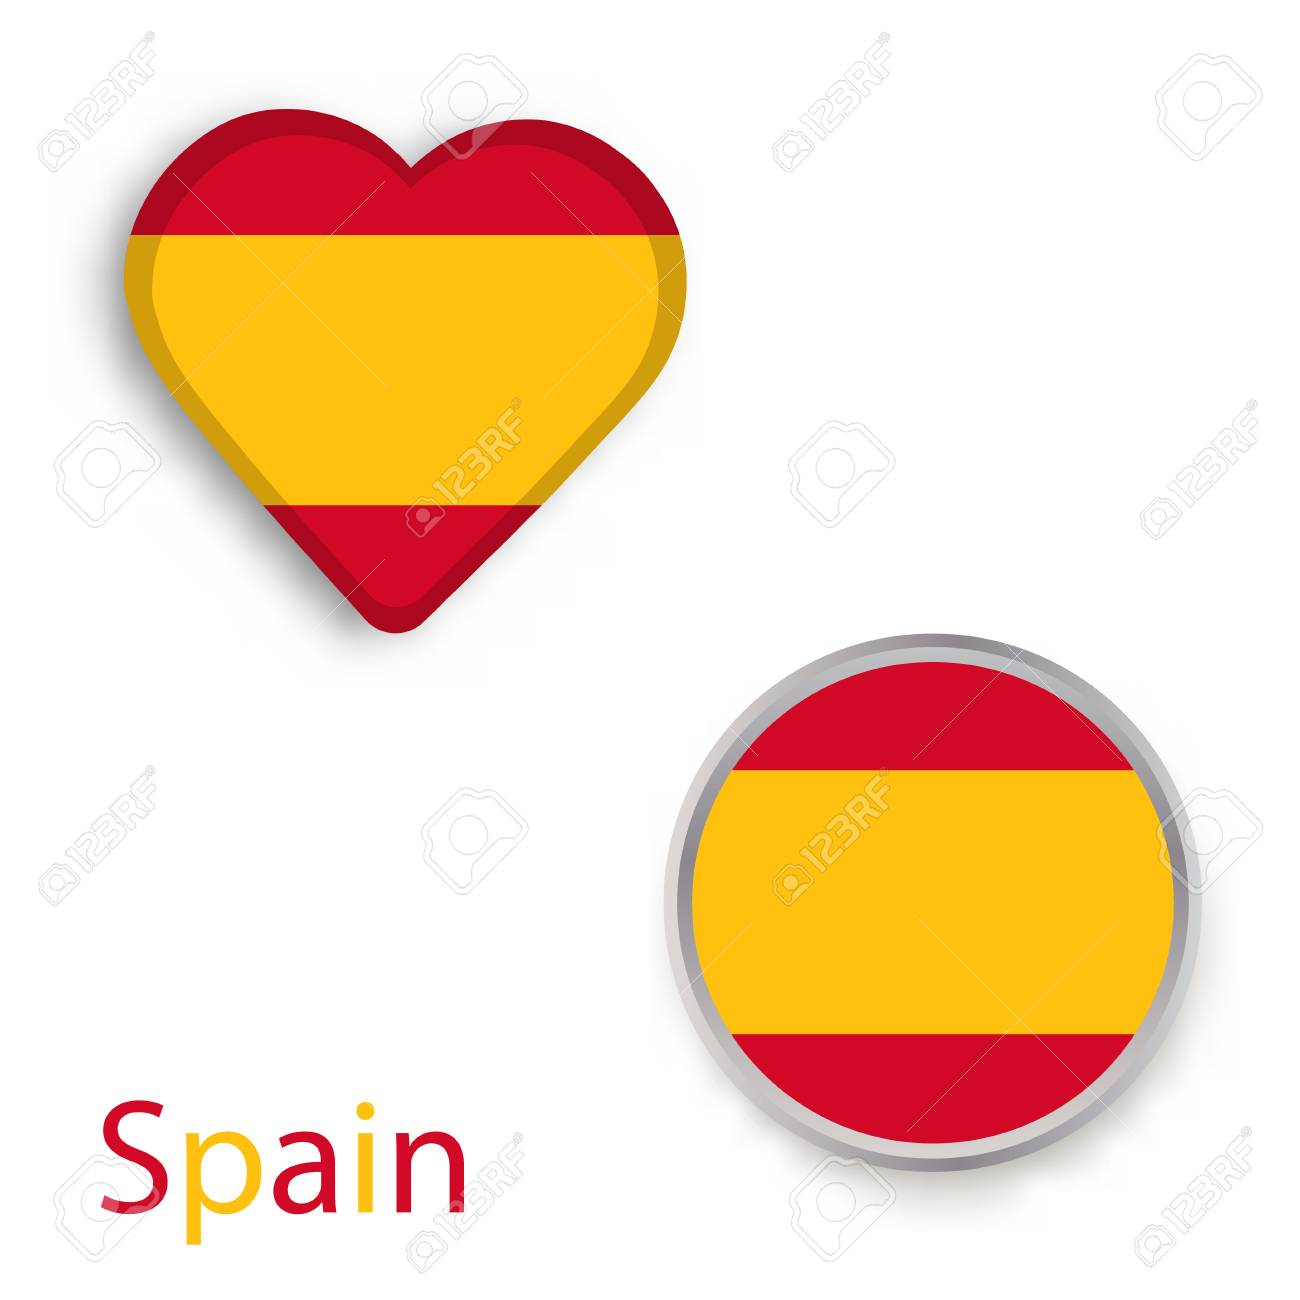 Heart and circle symbols with flag of spain vector illustration heart and circle symbols with flag of spain vector illustration stock vector 92438915 buycottarizona Images